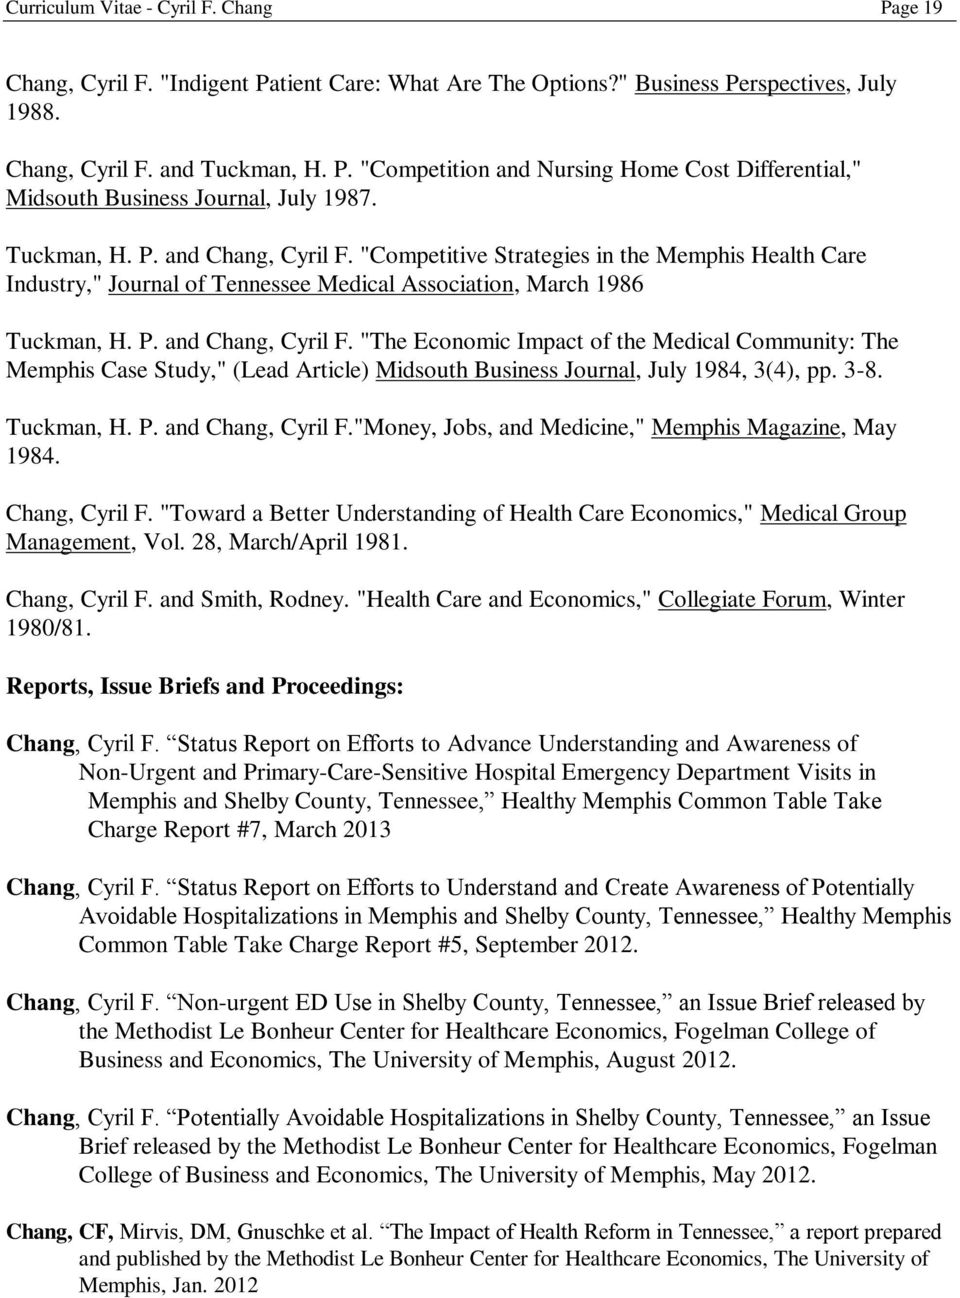 "3-8. Tuckman, H. P. and Chang, Cyril F.""Money, Jobs, and Medicine,"" Memphis Magazine, May 1984. Chang, Cyril F. ""Toward a Better Understanding of Health Care Economics,"" Medical Group Management, Vol."